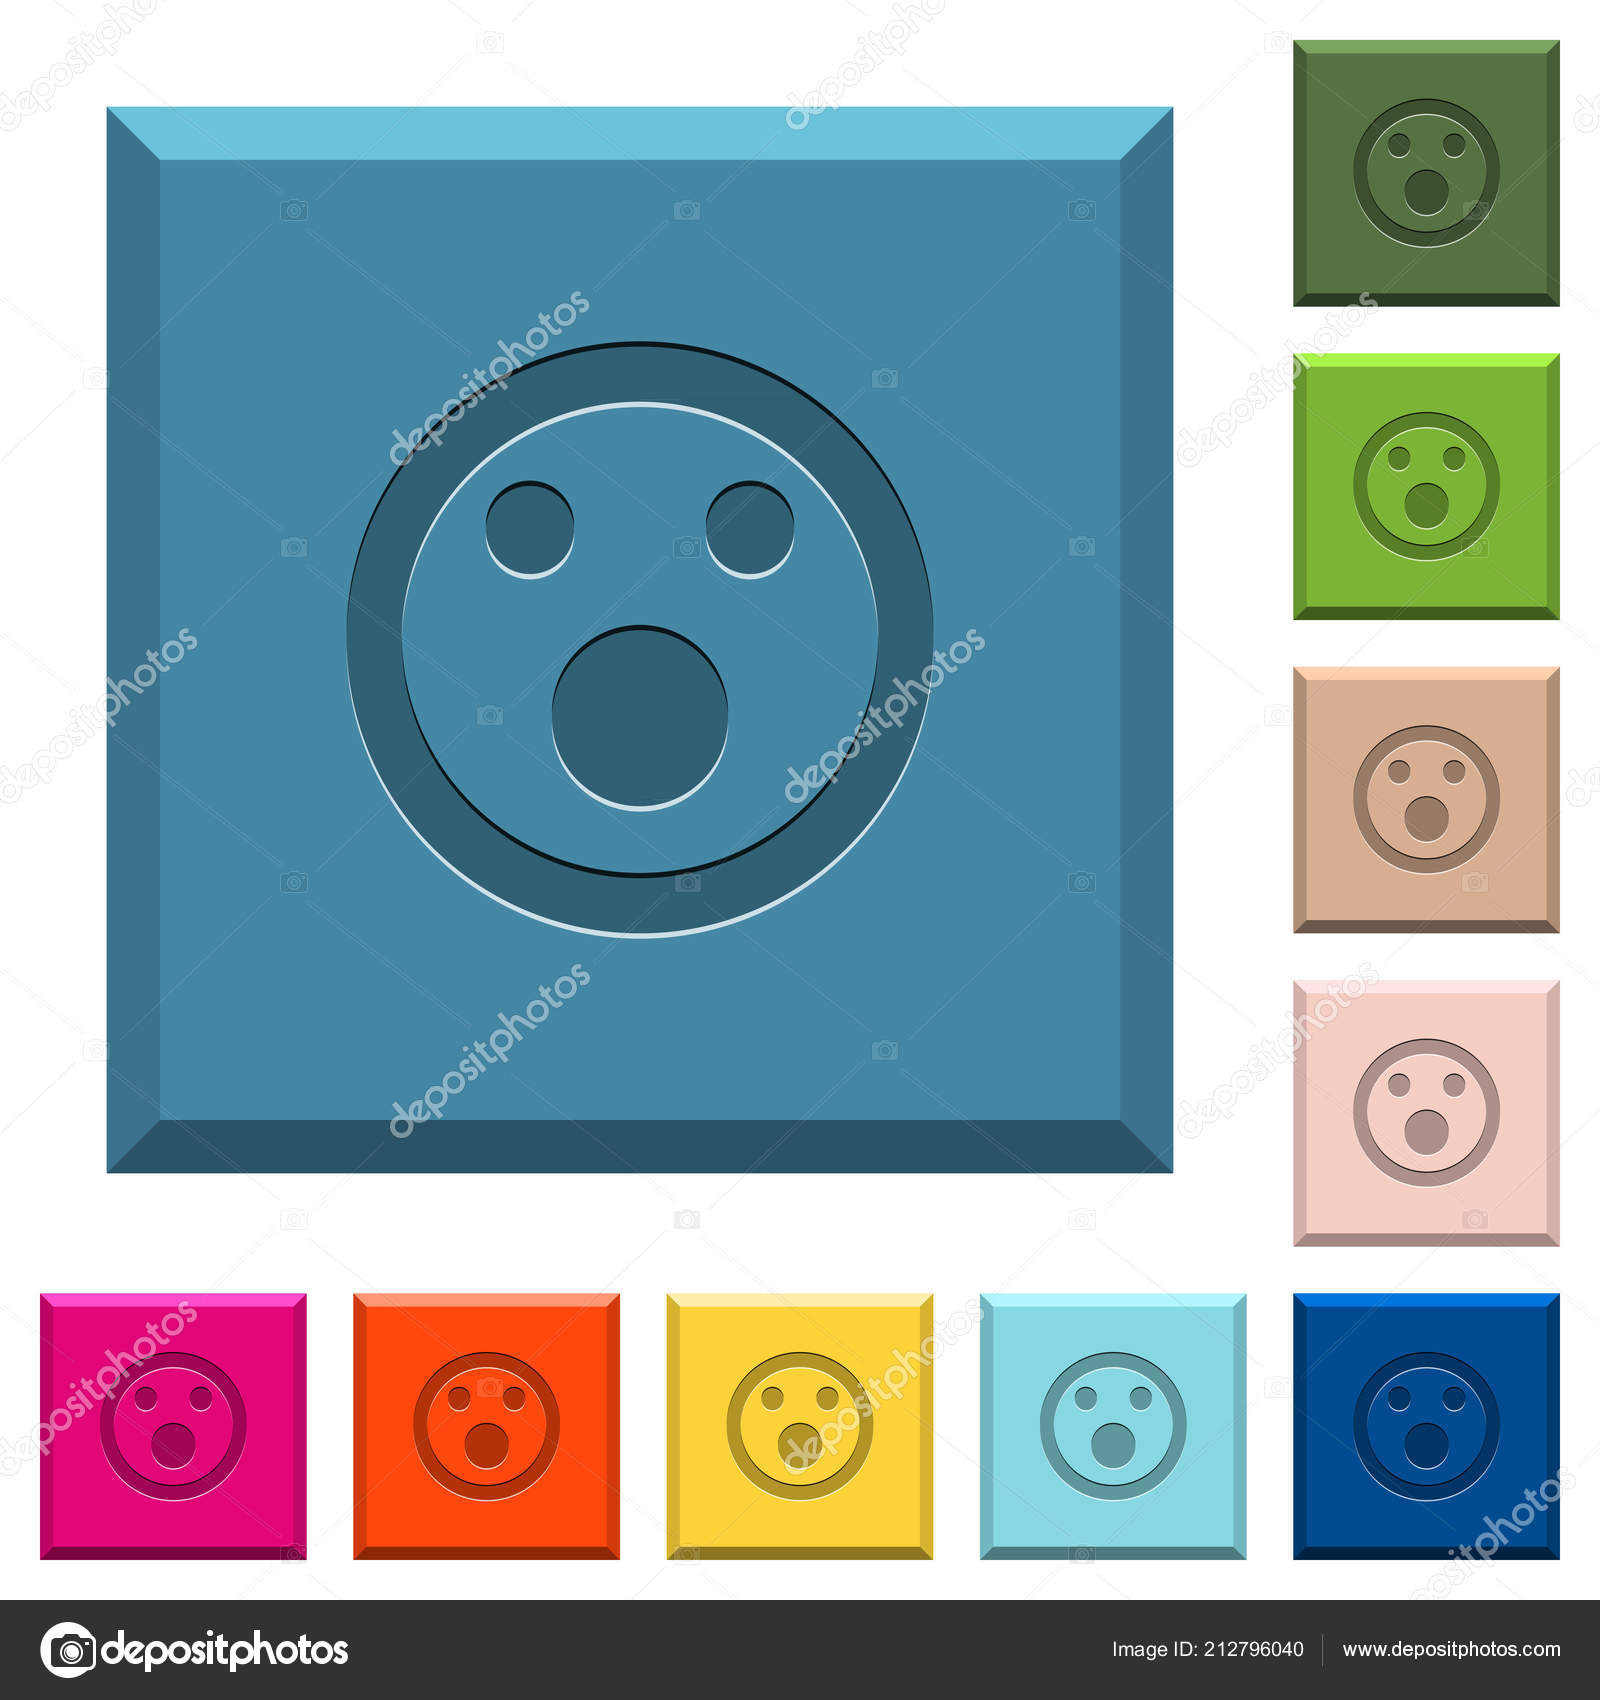 Electrical Symbols Download For Engraving Not Lossing Wiring Diagram Drawing Pdf Shocked Emoticon Engraved Icons Edged Square Buttons Various Trendy Rh Depositphotos Com Library